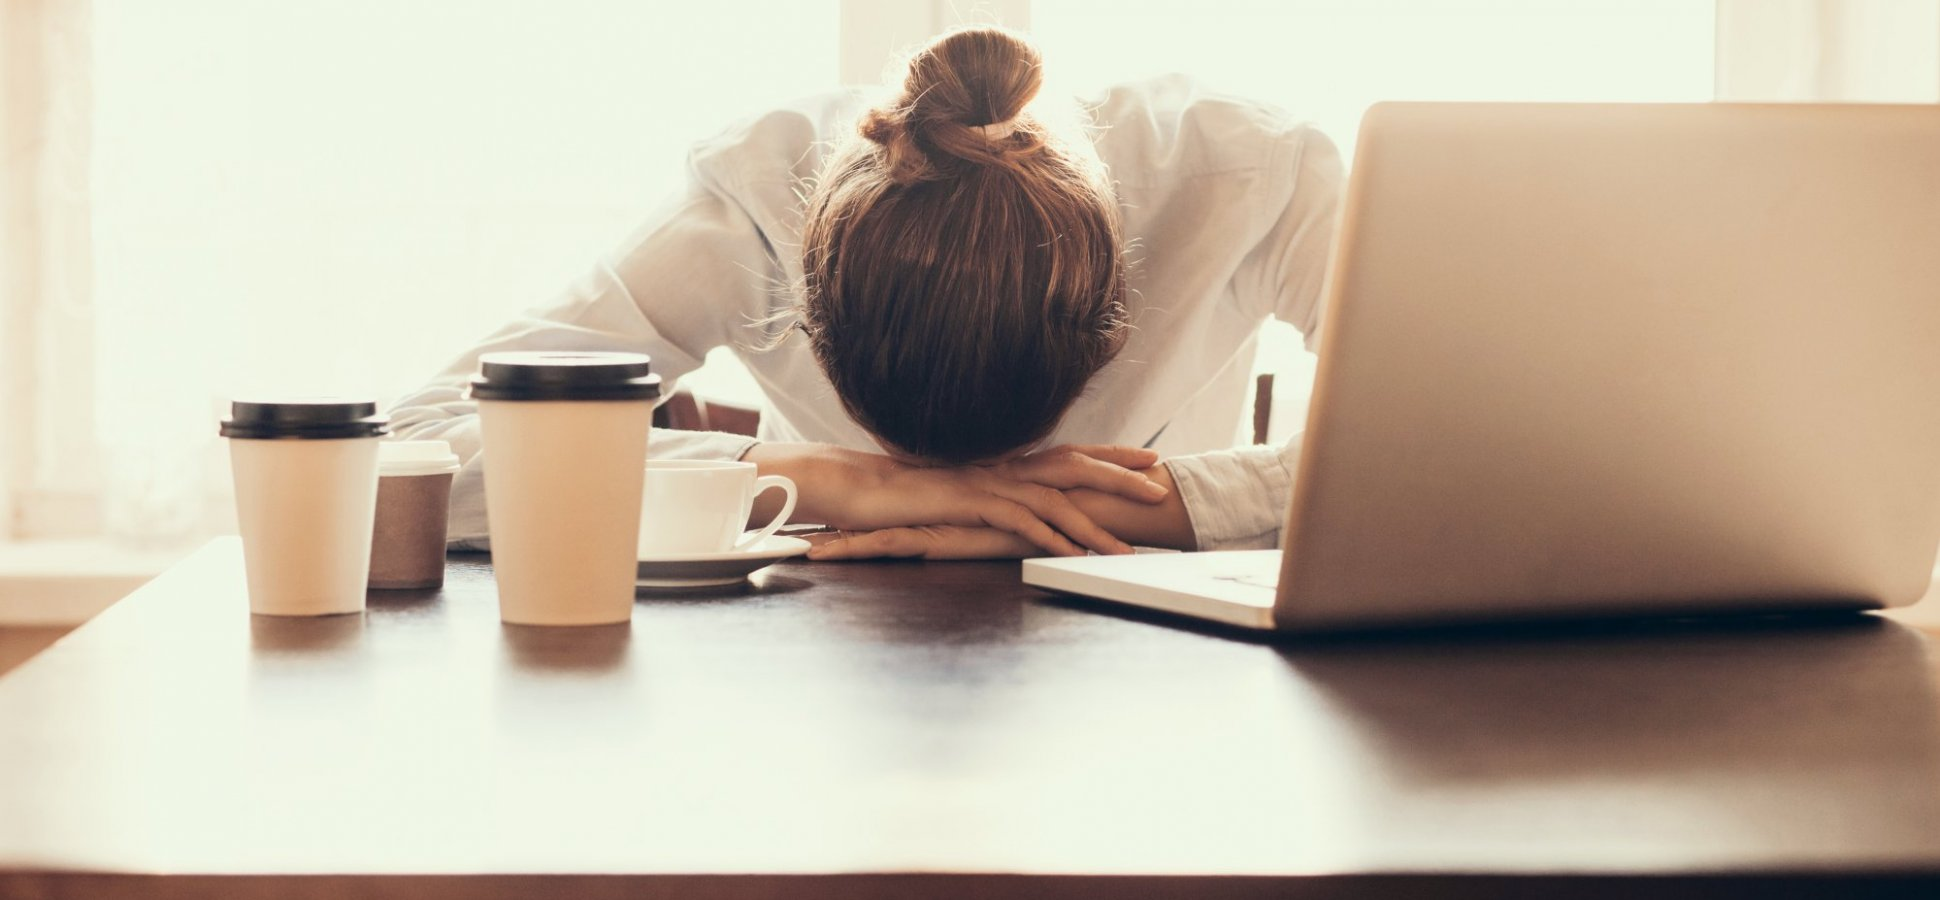 Health Problems Due to Stress at Work? Science Shows This Surprising Tactic Can Help